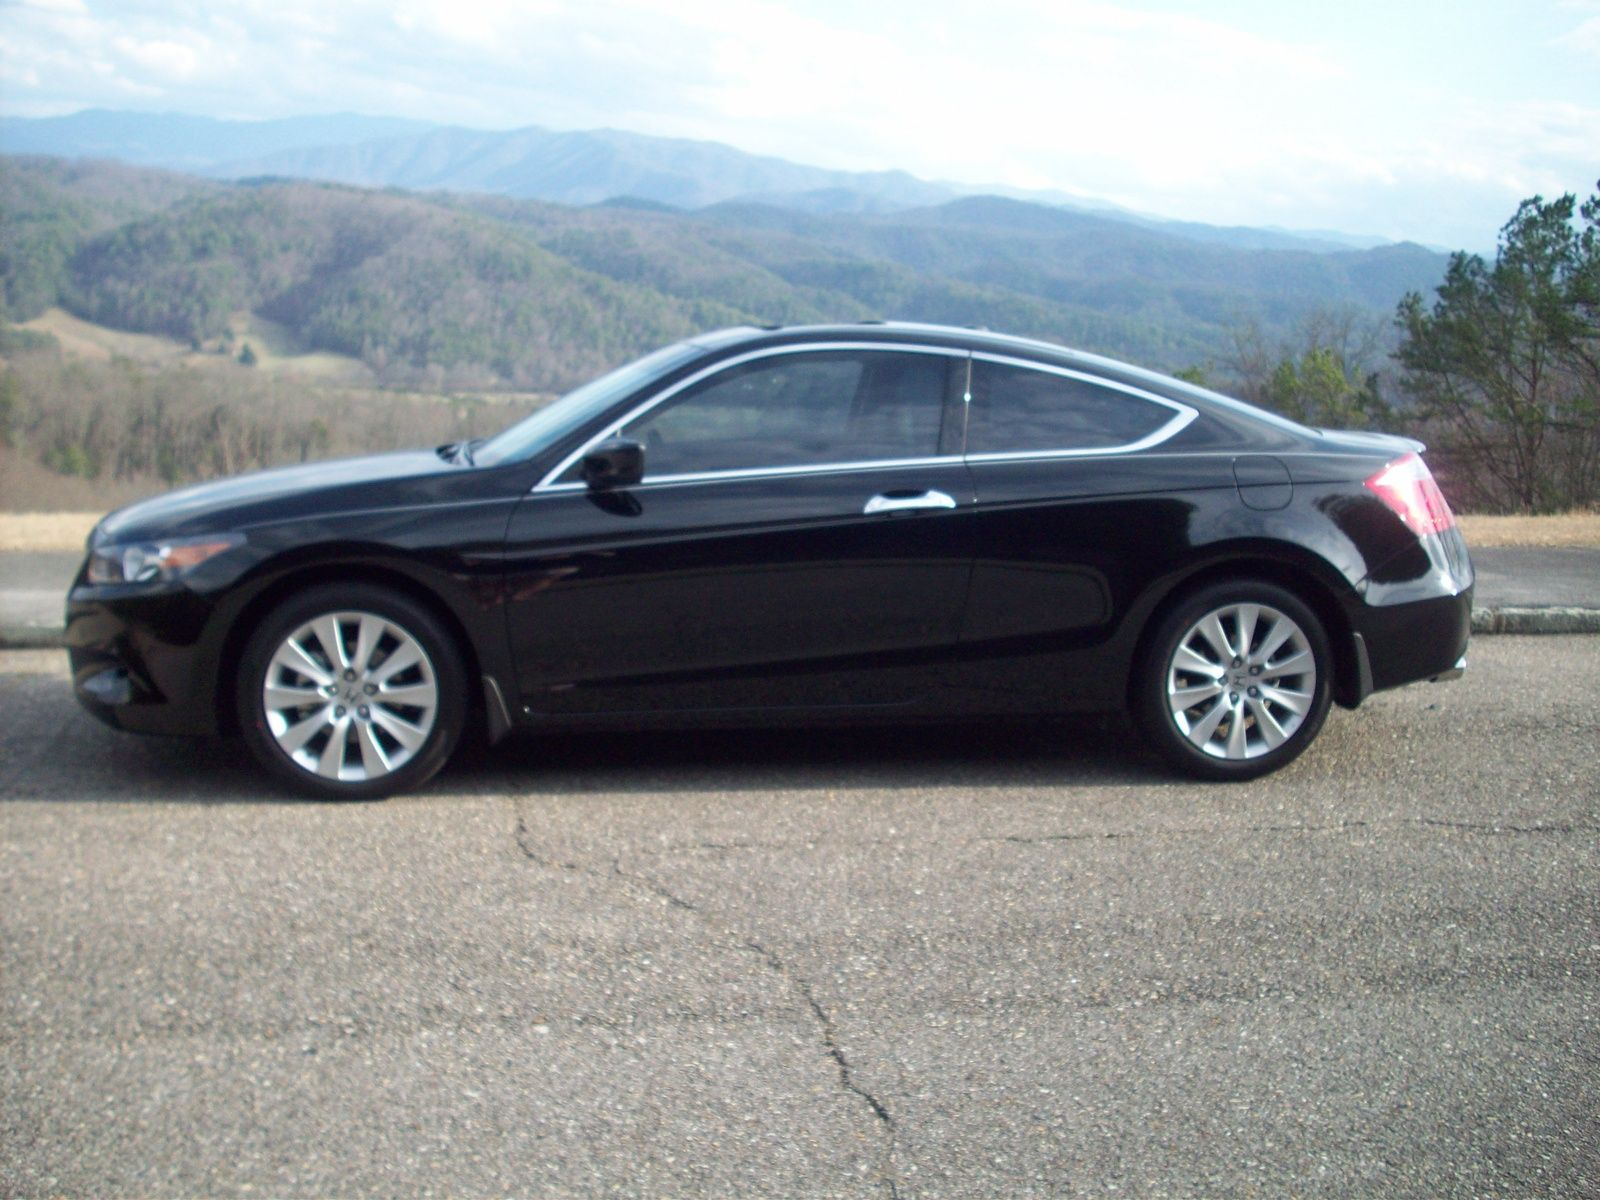 Marvelous 2009 Honda Accord Coupe│Future Candidate